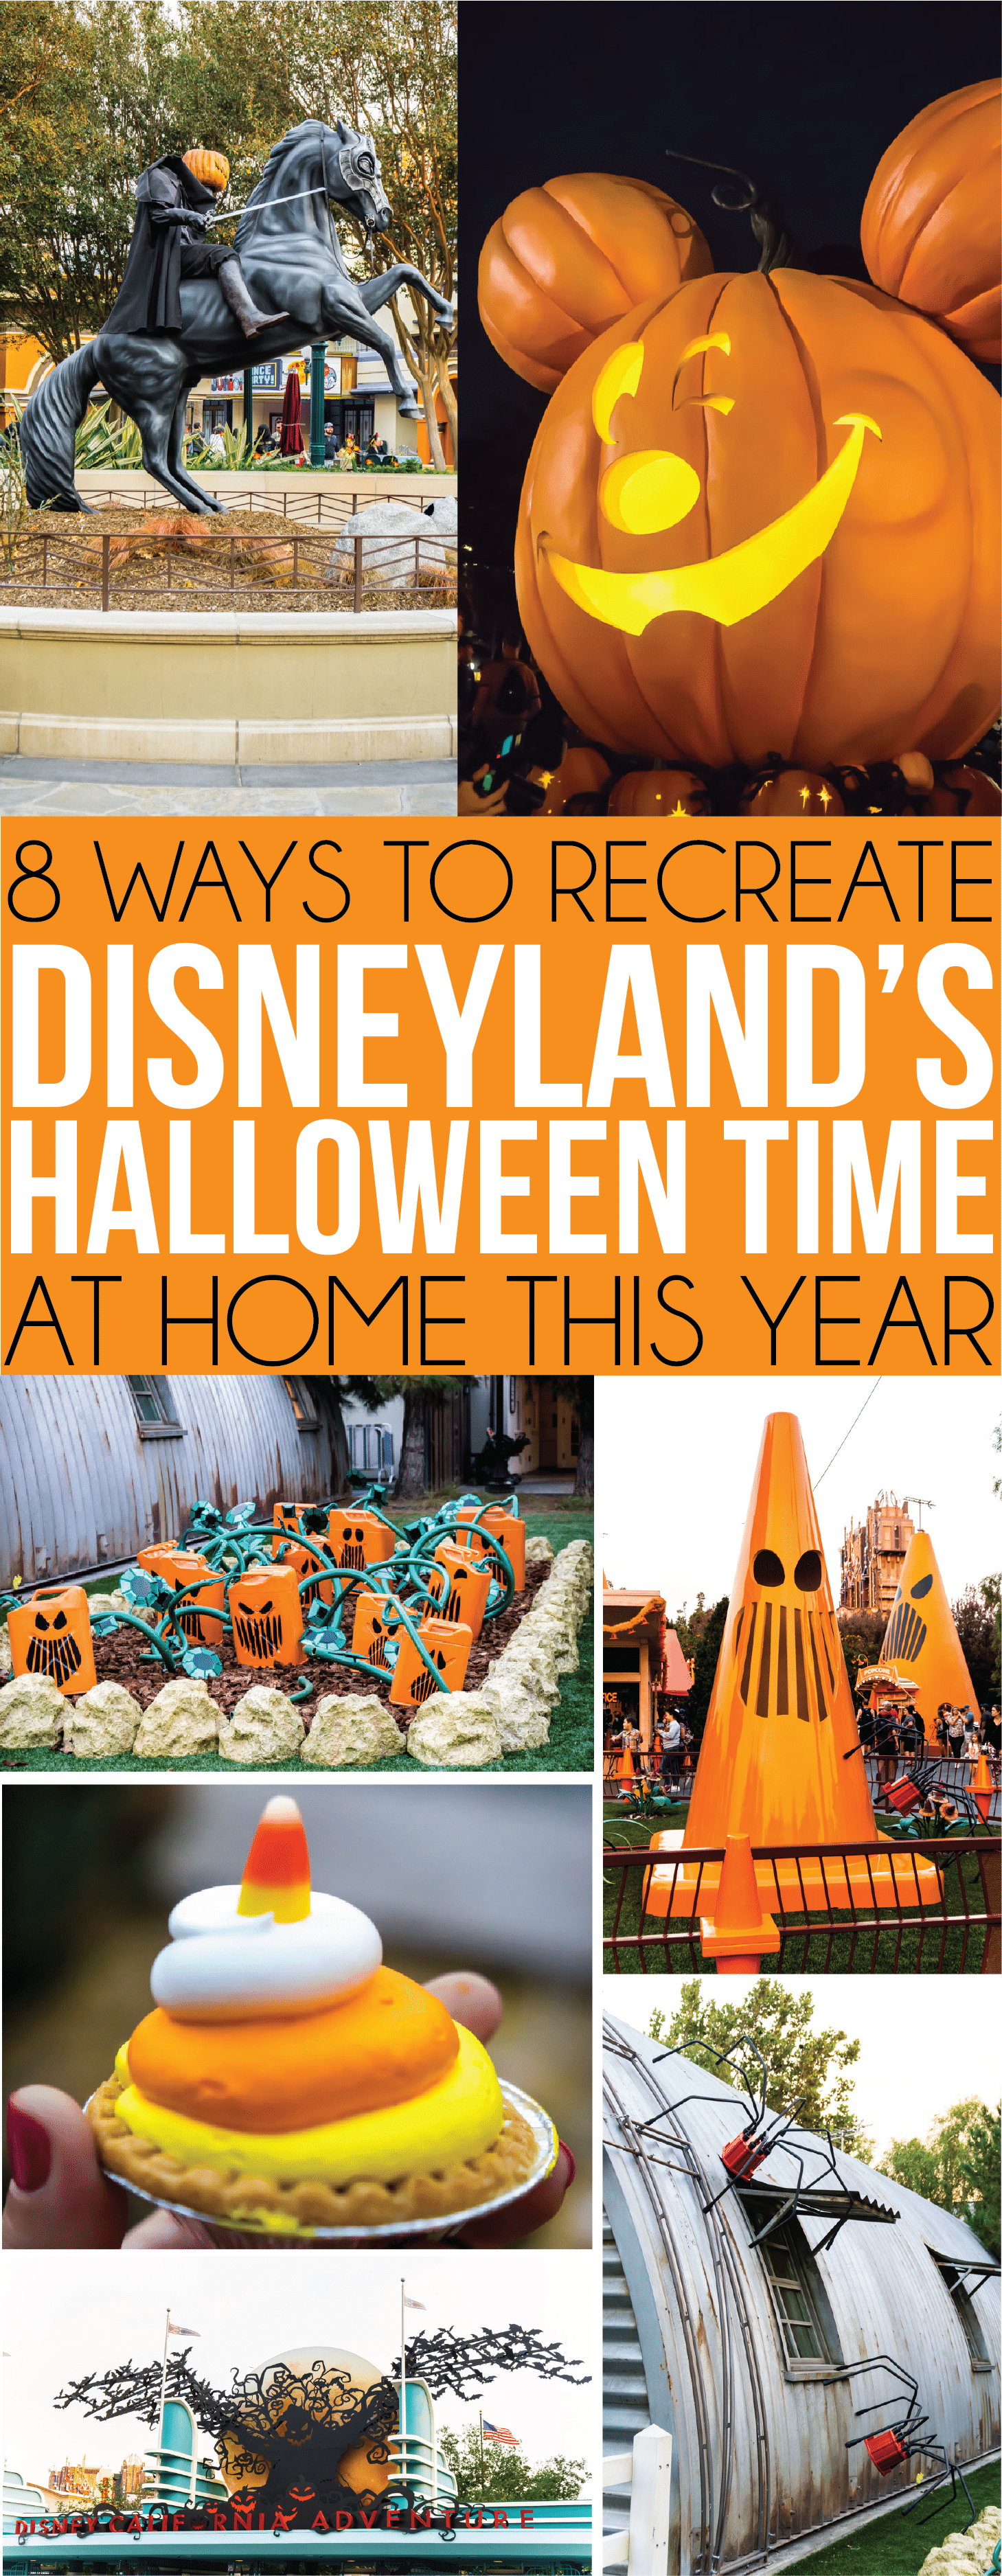 Fun ways to recreate the Disneyland Halloween party at home